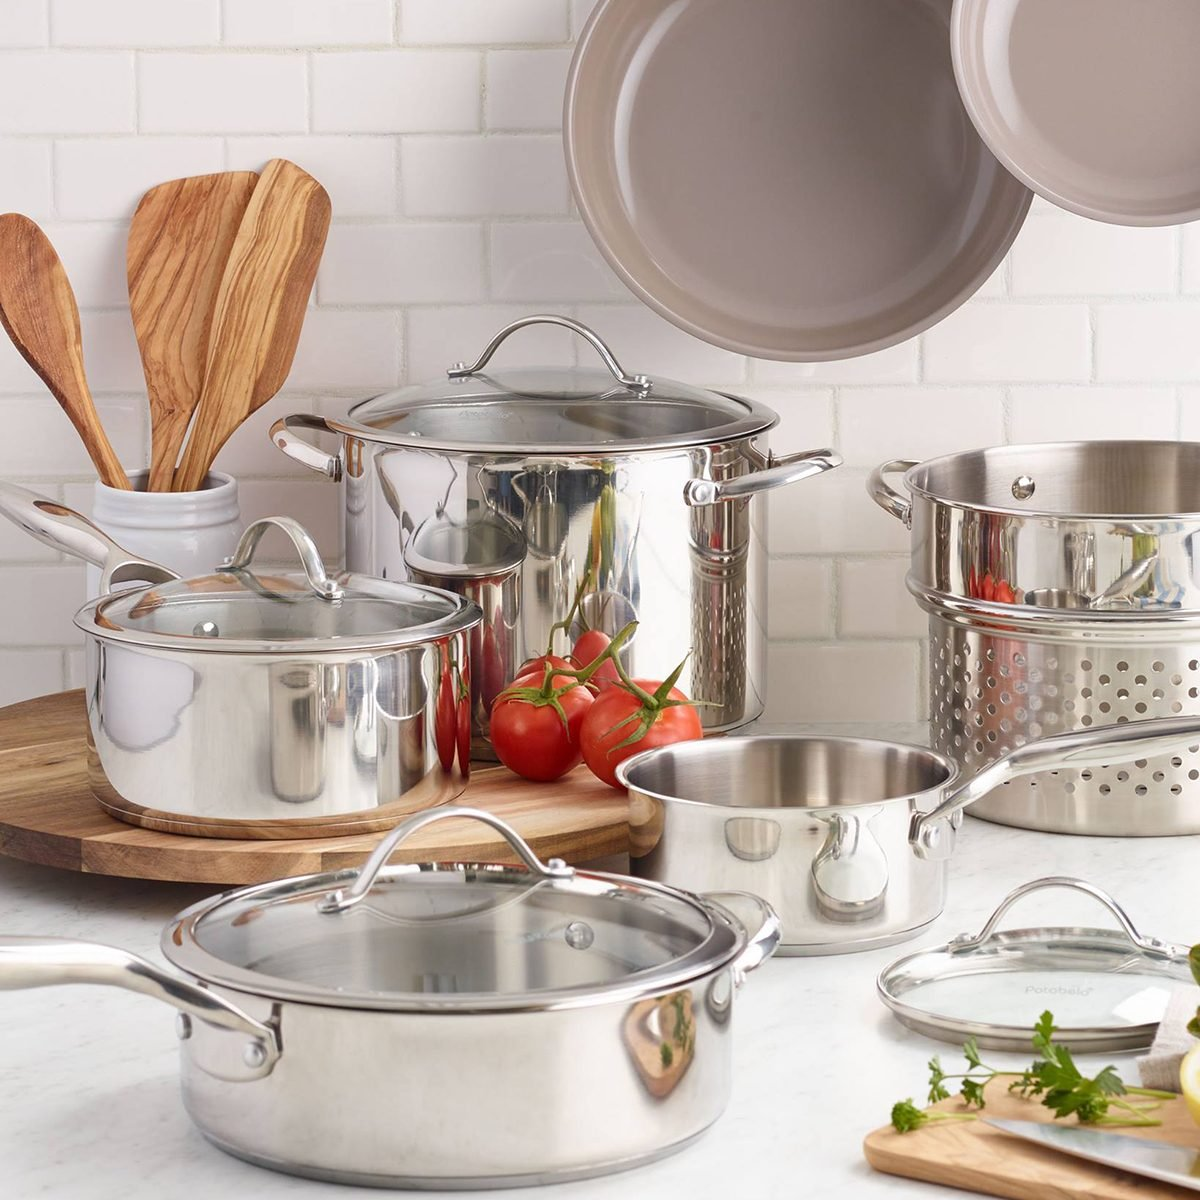 Kitchenware Shop The 10 Best Places To Buy Affordable Kitchen Gadgets Online